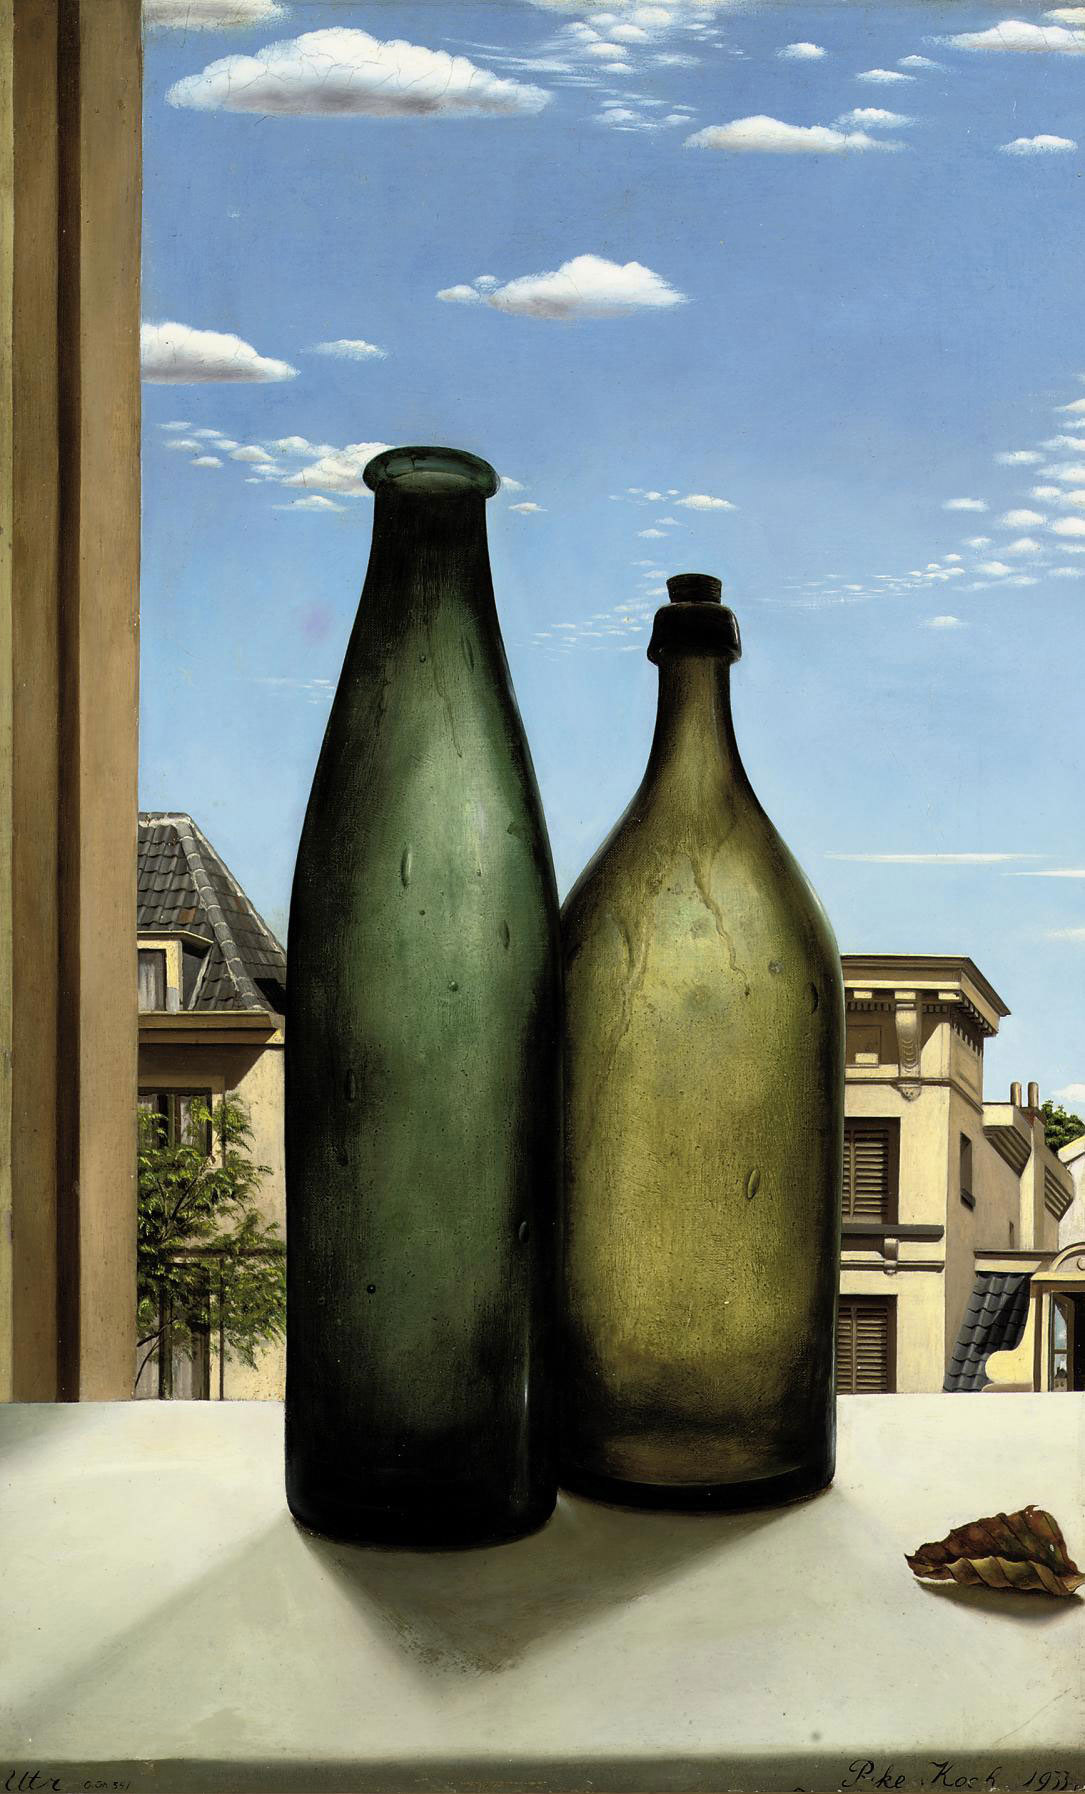 Stilleven met twee flessen: bottles in an open window